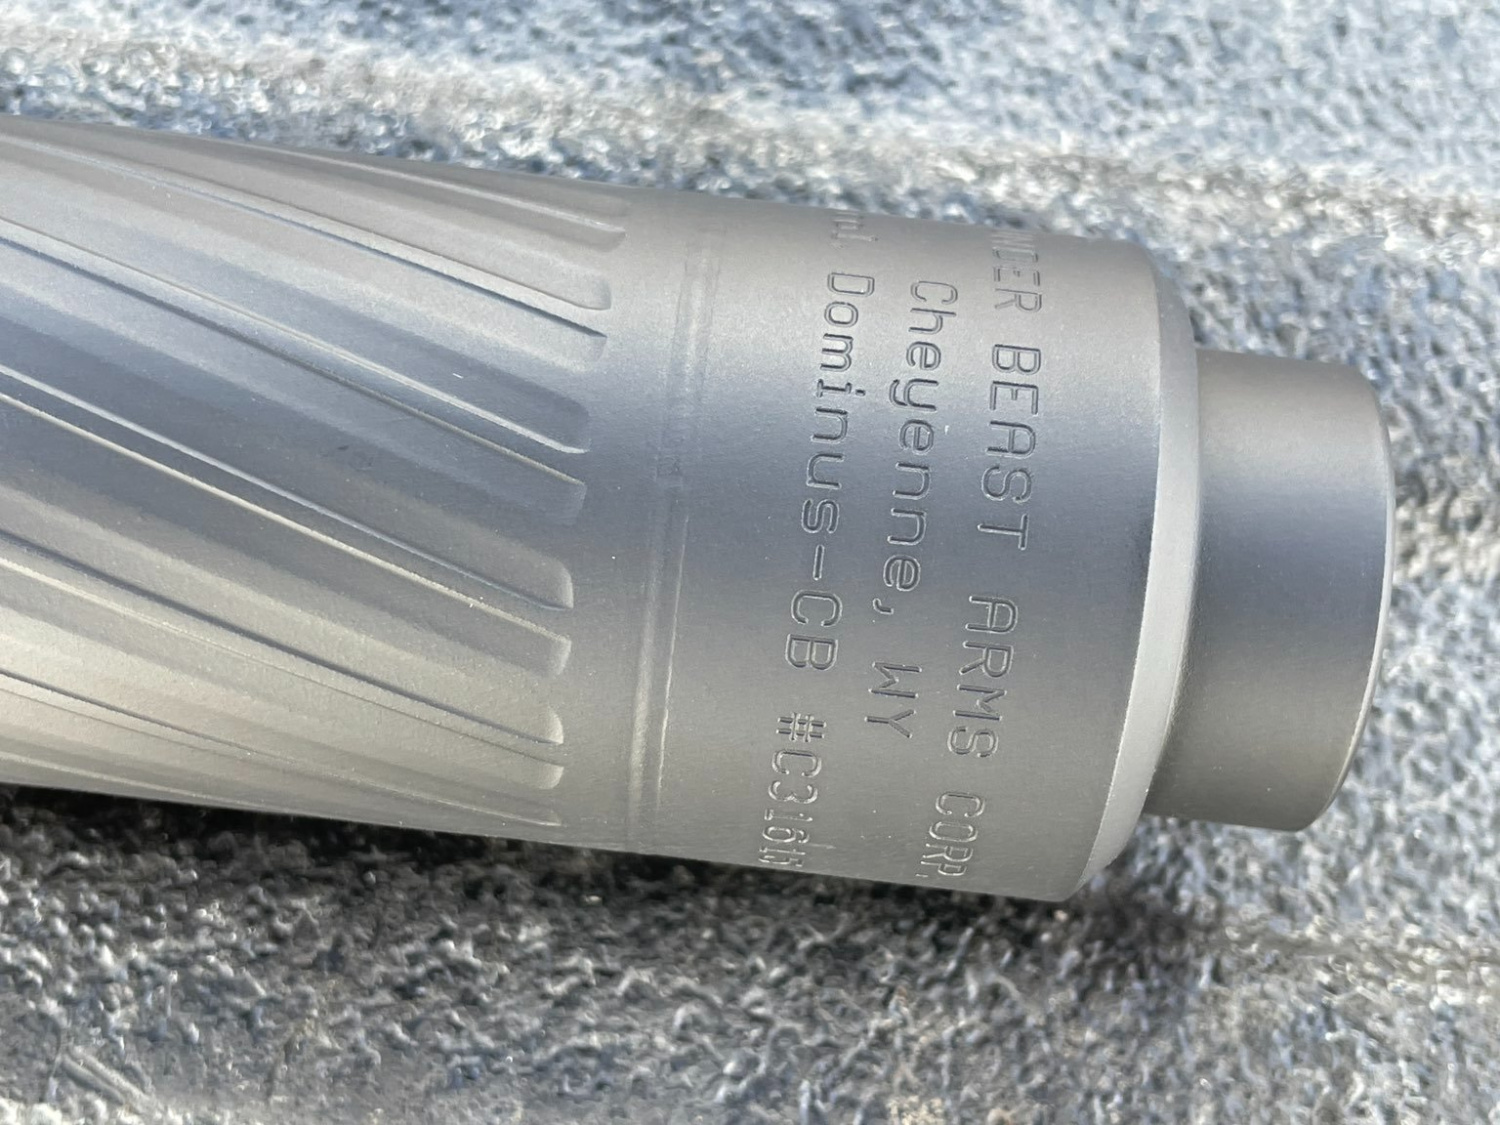 Once an affected suppressor has been fixed, you'll be able to tell by the visible seam shown here, between the engraved lettering and the fluting. This seam won't be seen on unrepaired cans.